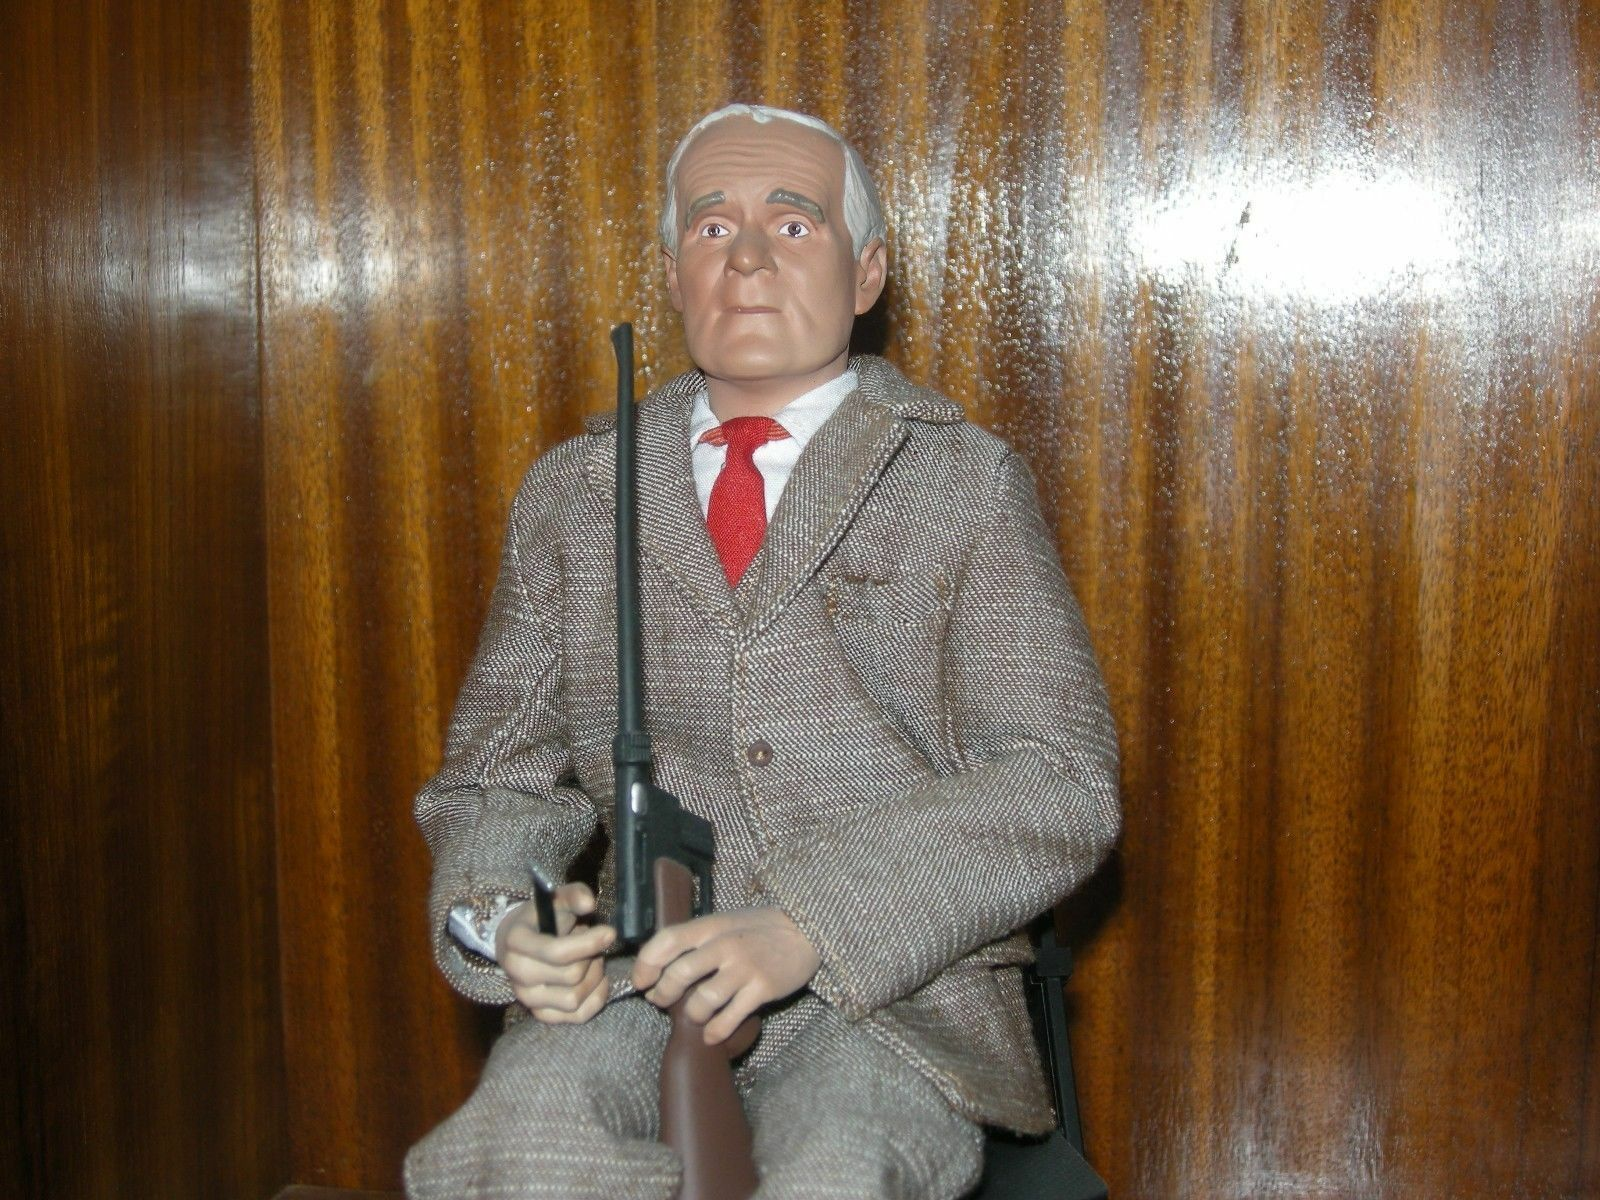 16 James Bond 007 agente Desmond Llewelyn como Q Figura Sideshow DID